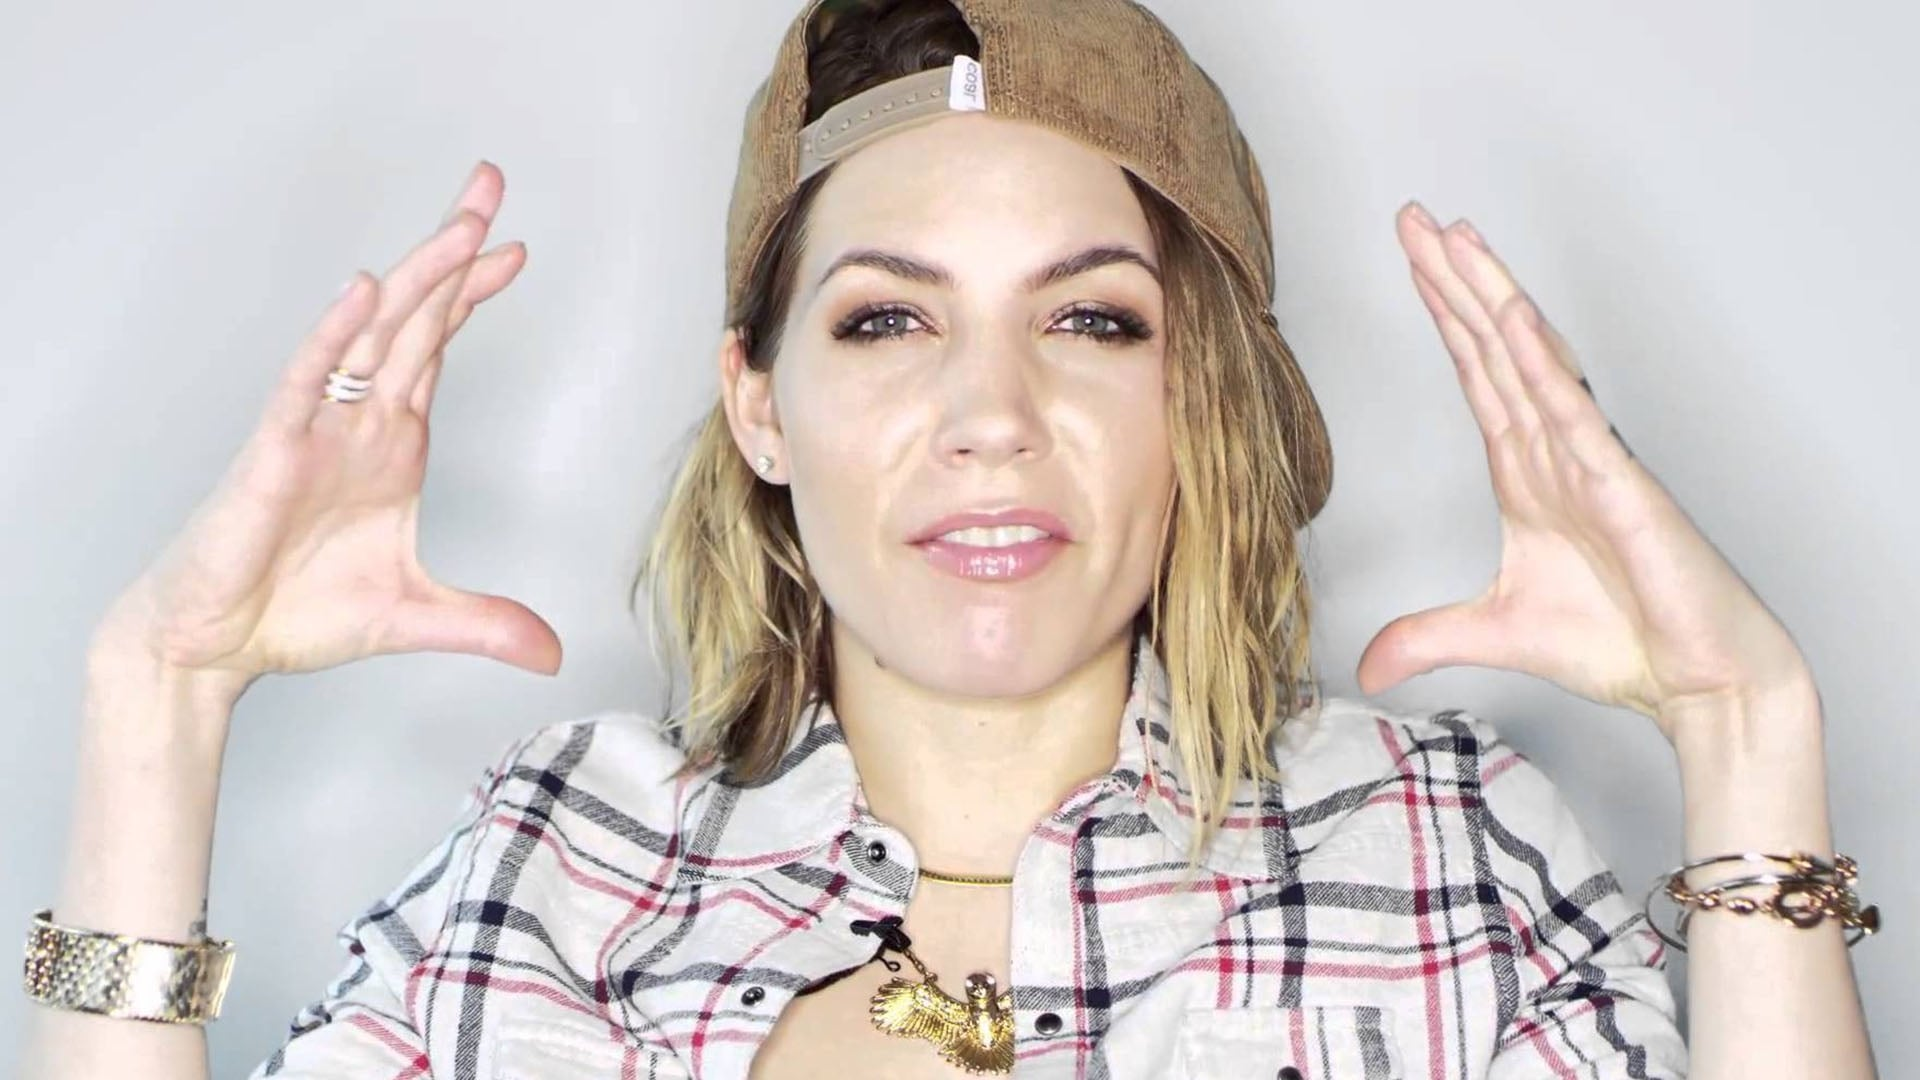 High Quality Car Pictures And Car Wallpapers 15 Skylar Grey Hd Wallpapers High Quality